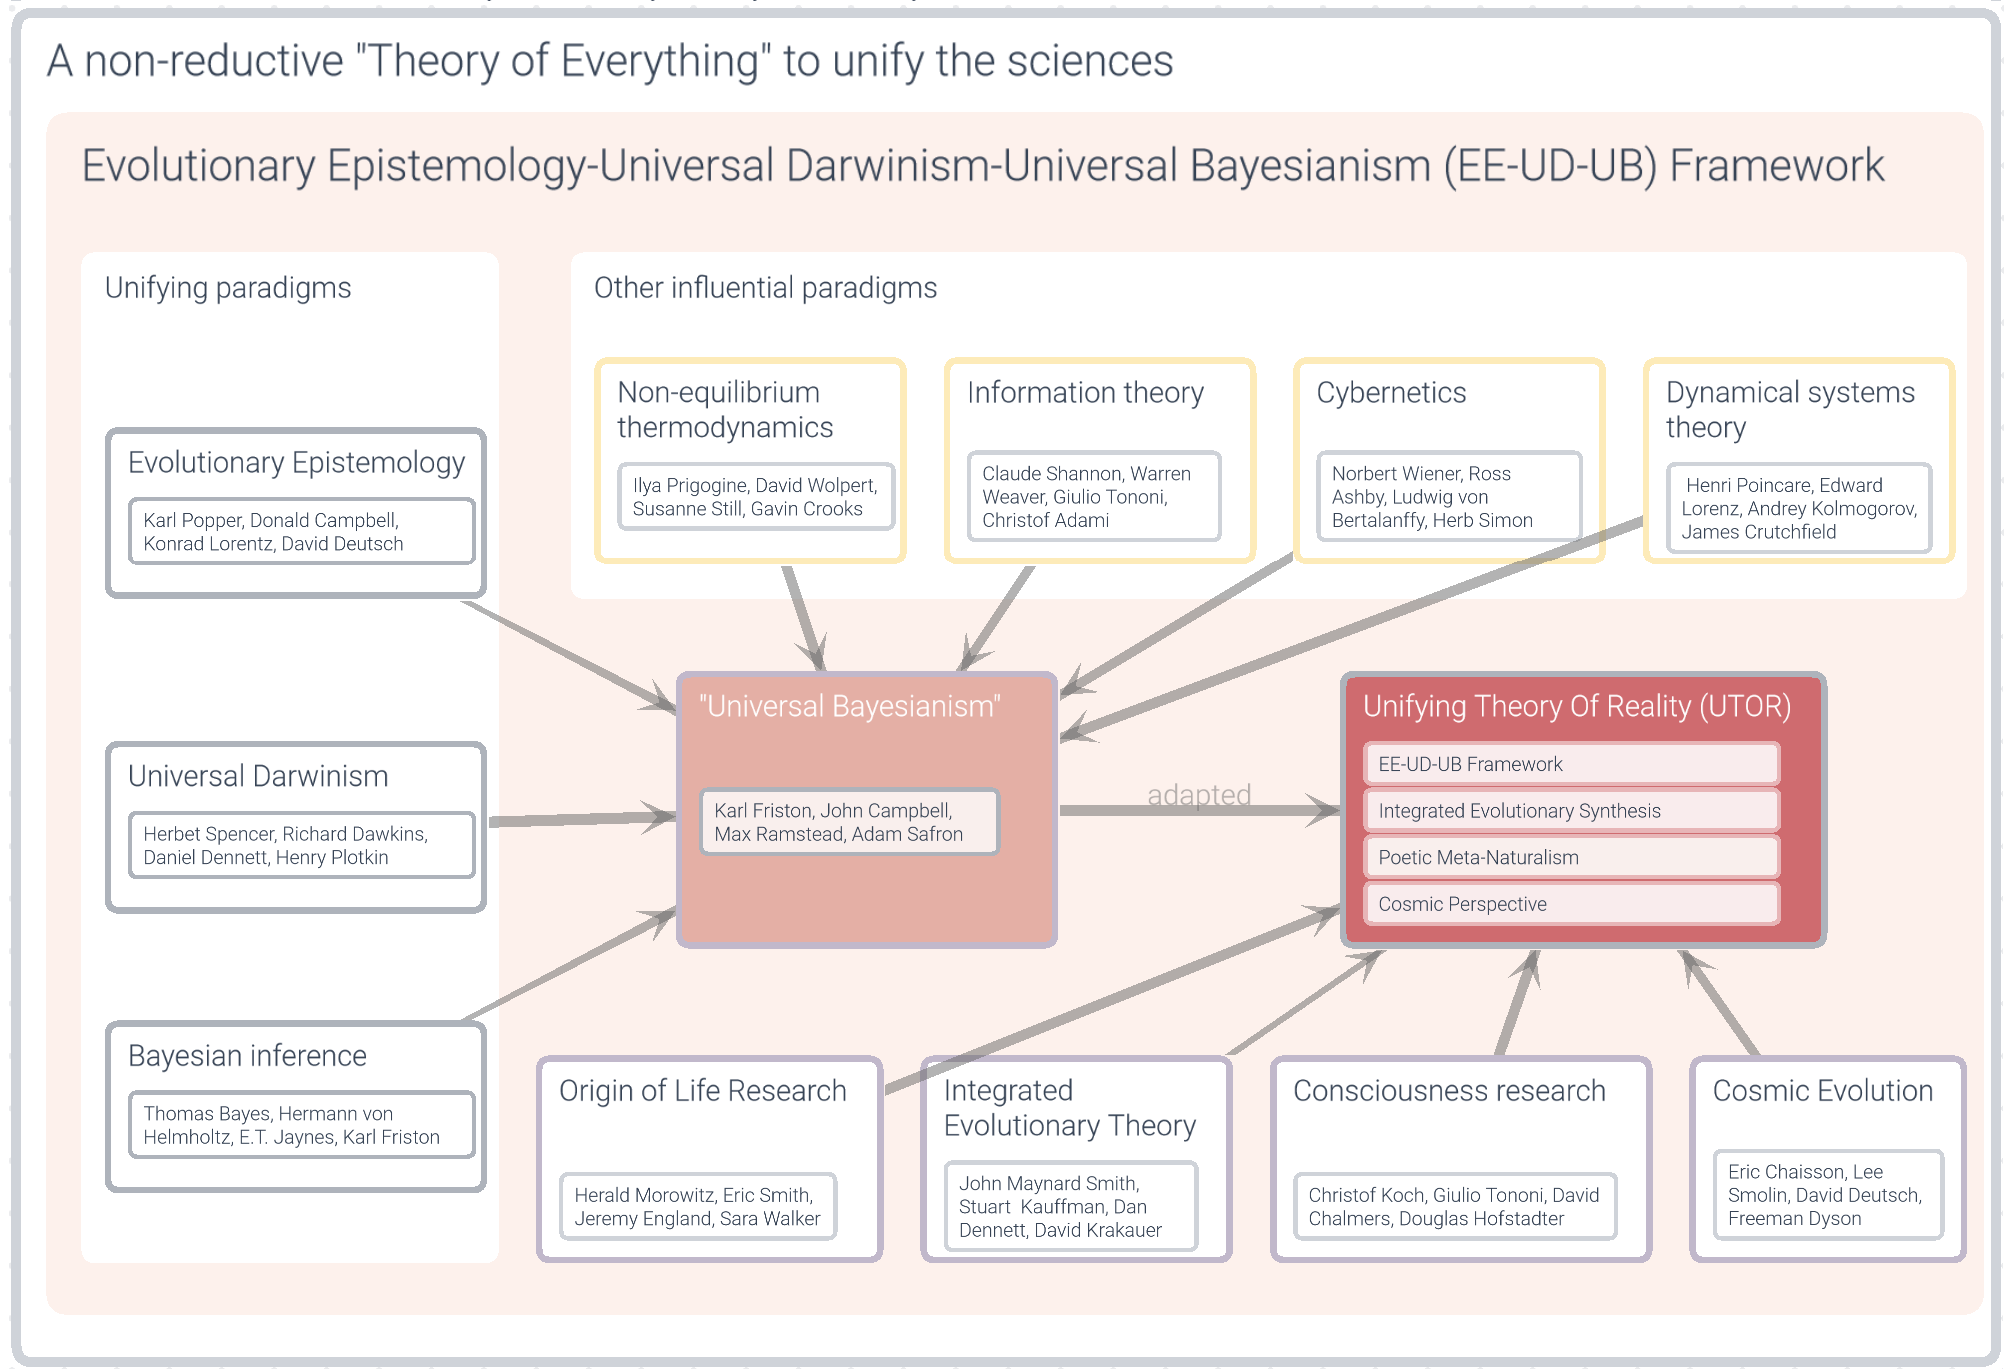 Capture A non-reductive Theory of Everything to unify the sciences_hi res